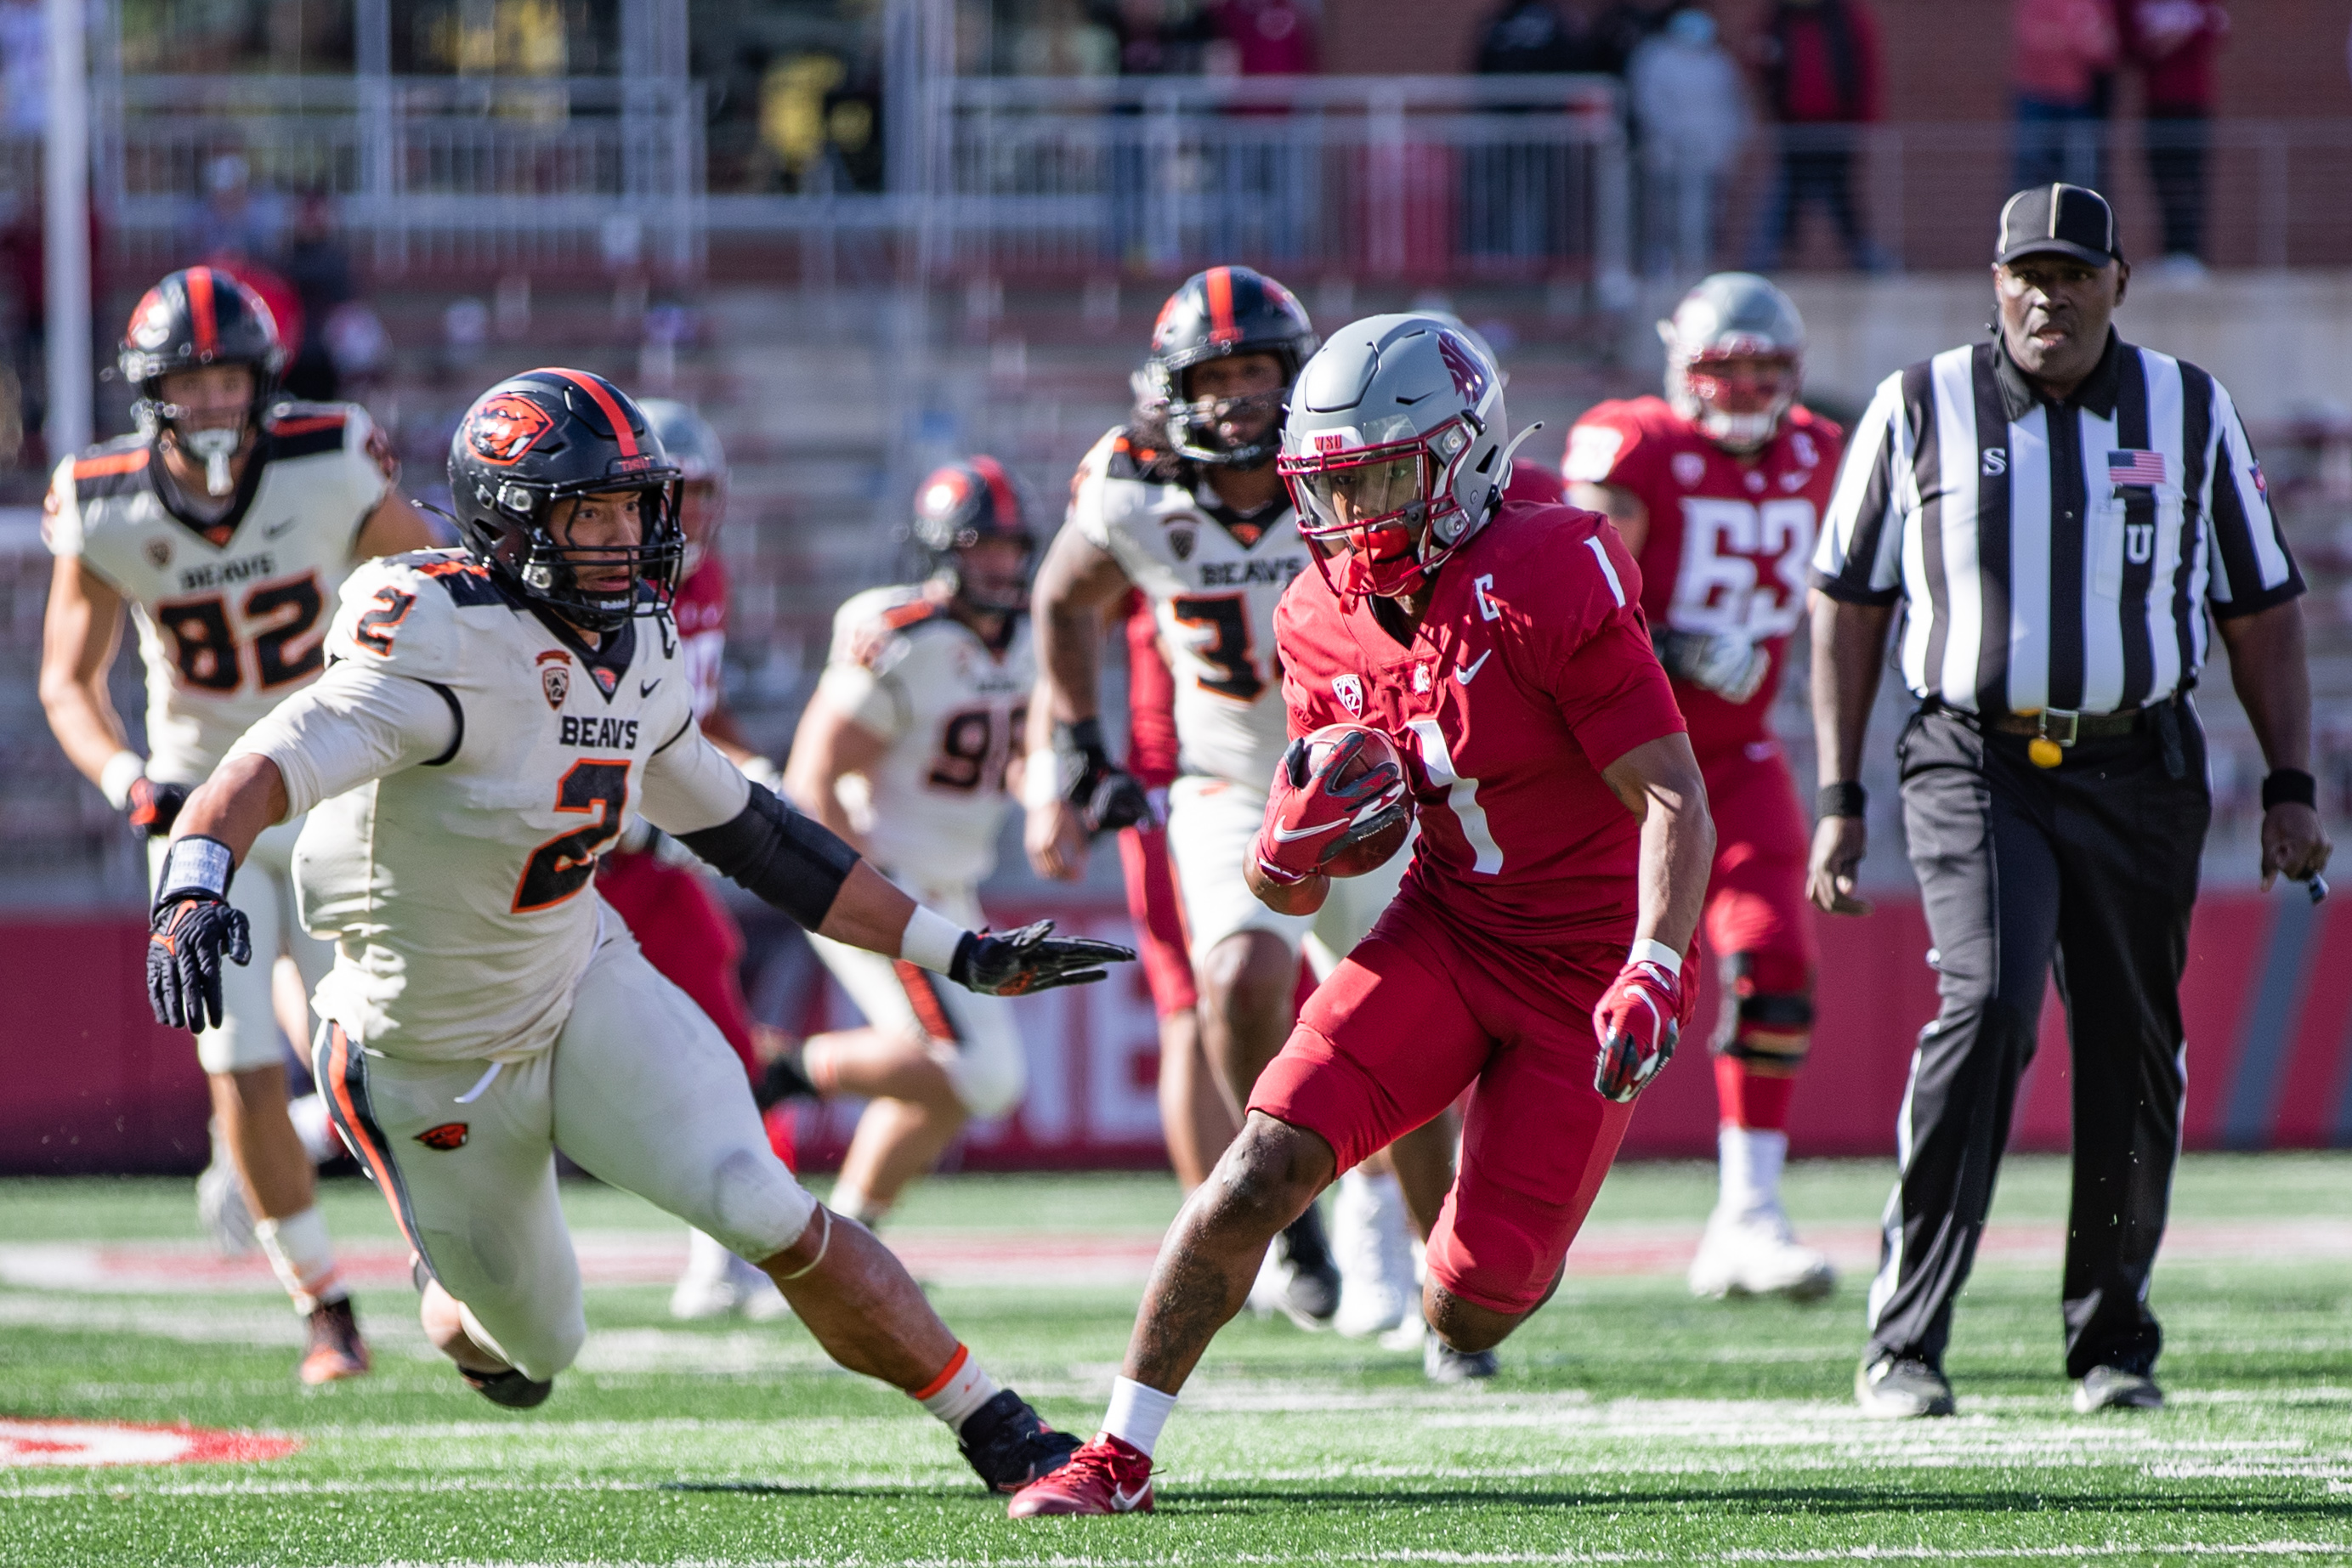 PULLMAN, WA - OCTOBER 9: Washington State receiver Travell Harris (1) runs past a defender after the catch during the first half of a PAC 12 conference matchup between the Oregon State Beavers and the Washington State Cougars on October 9, 2021, at Martin Stadium in Pullman, WA.